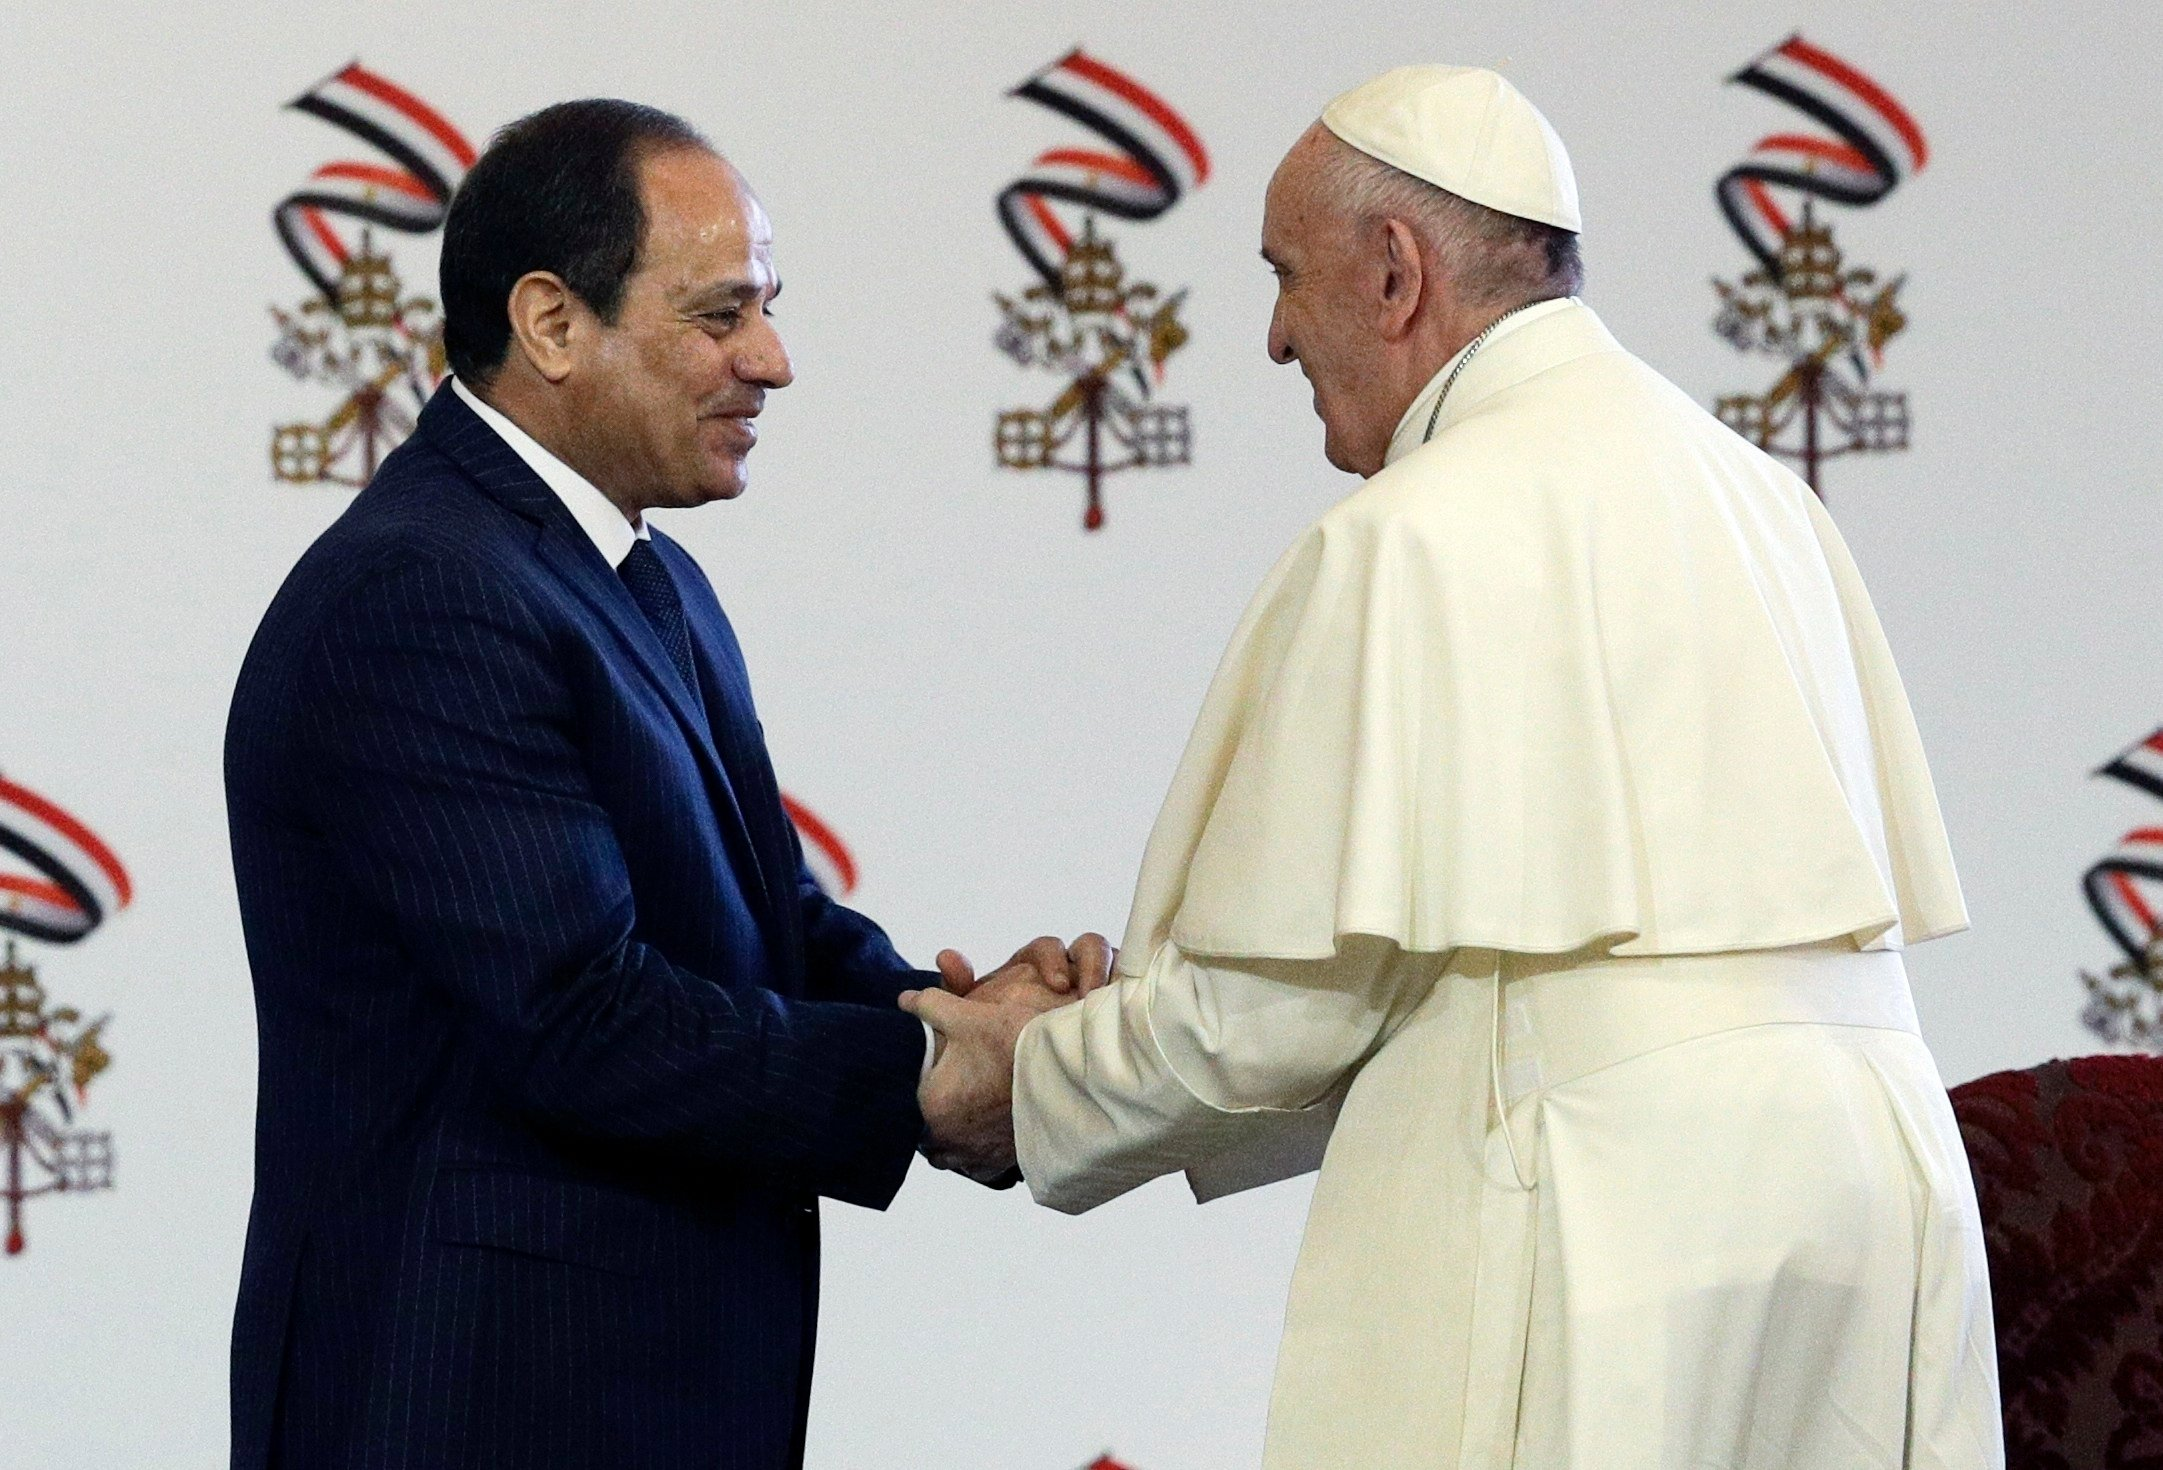 Pope Francis shakes hands with Egyptian President Abdel-Fattah El-Sissi, in Cairo, Friday, April 28, 2017. Francis is in Egypt for a two-day trip aimed at presenting a united Christian-Muslim front that repudiates violence committed in God's name. (AP Pho